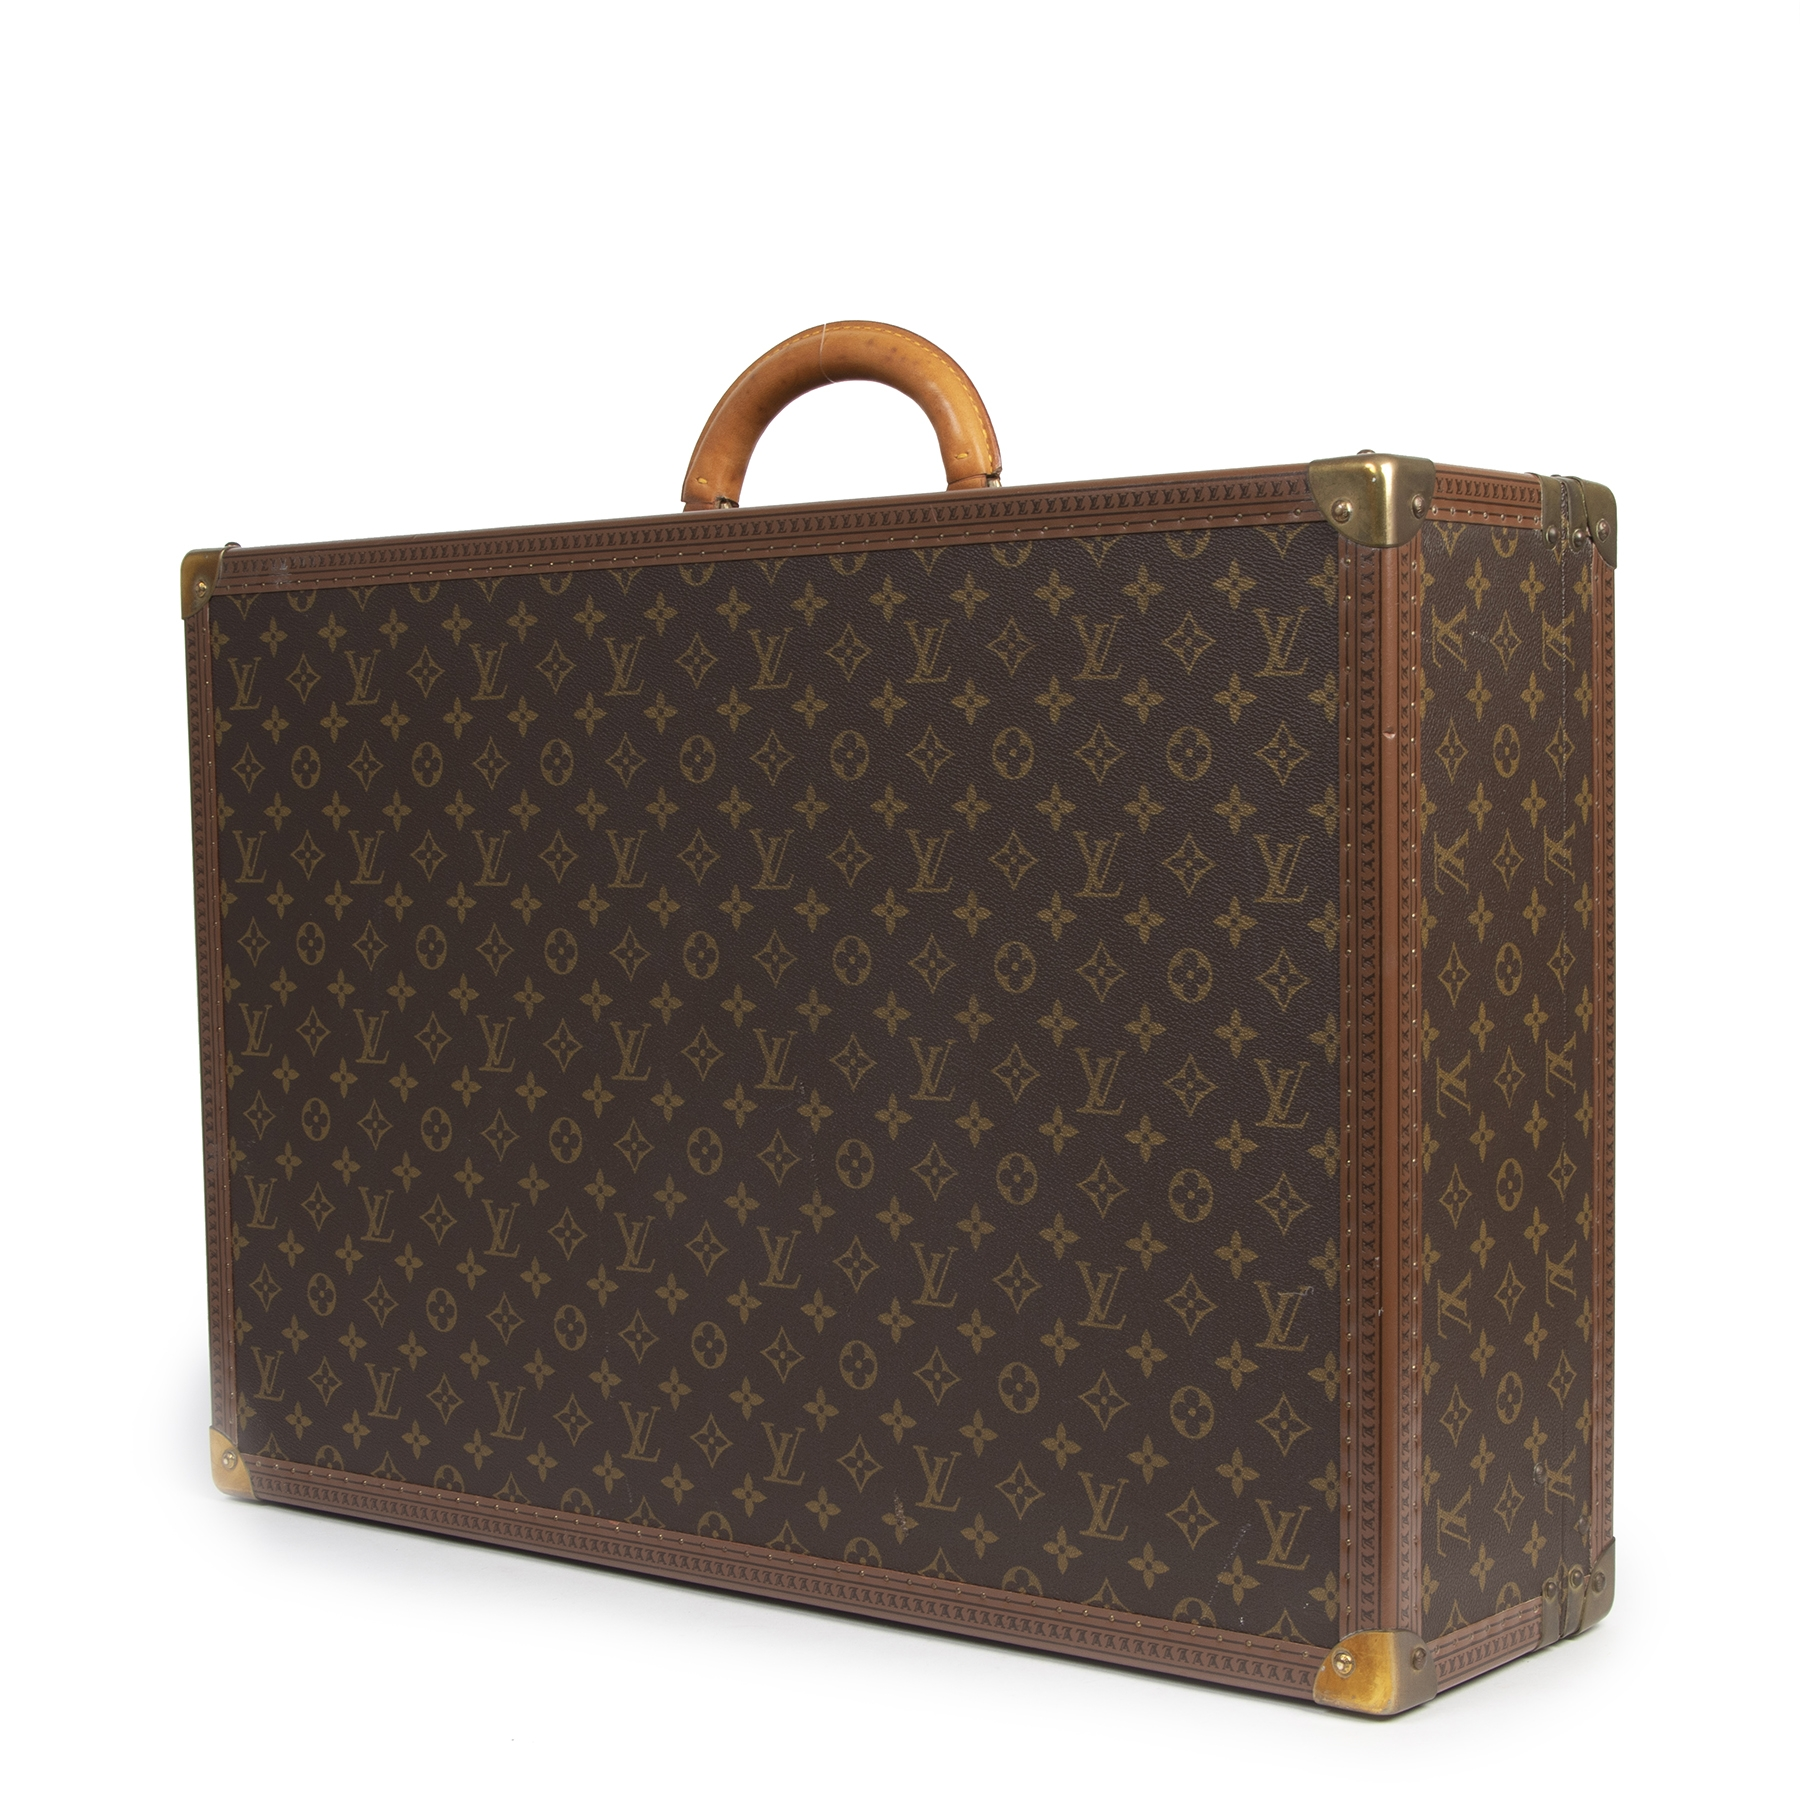 Authentieke tweedehands vintage Louis Vuitton Bisten 65 Monogram Travel Trunk koop online webshop LabelLOV